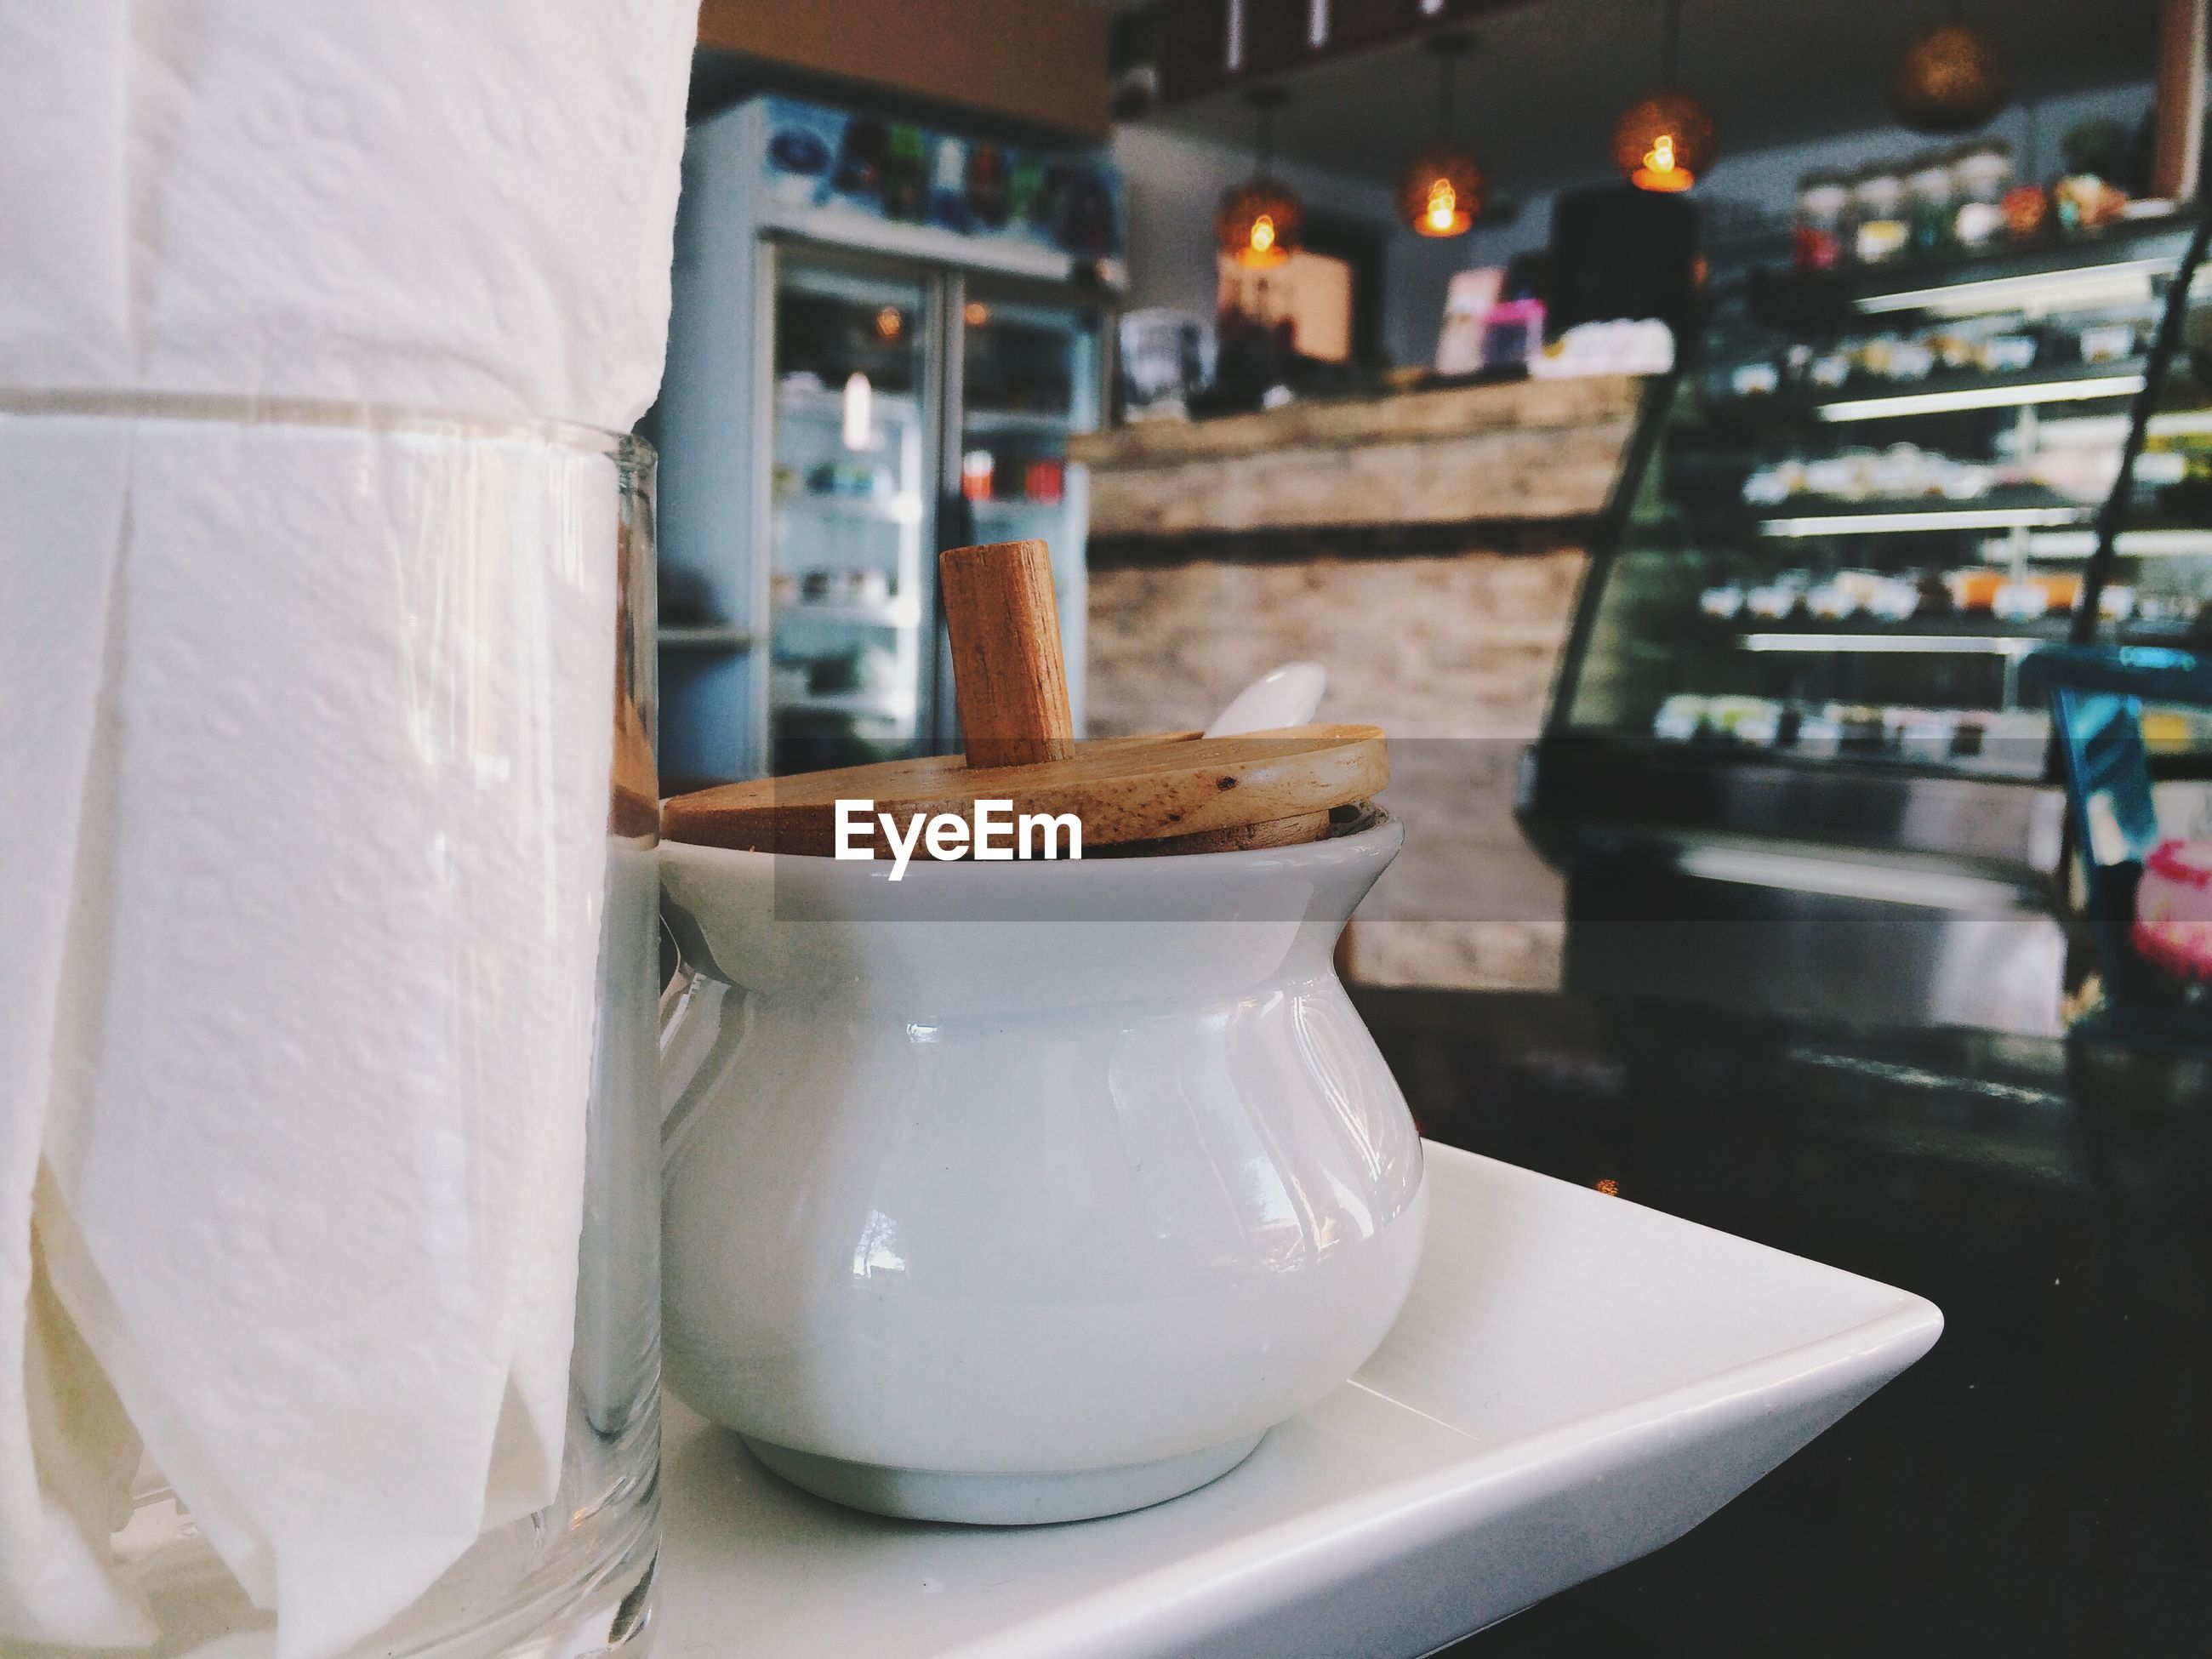 Coffee pot in plate on table at restaurant